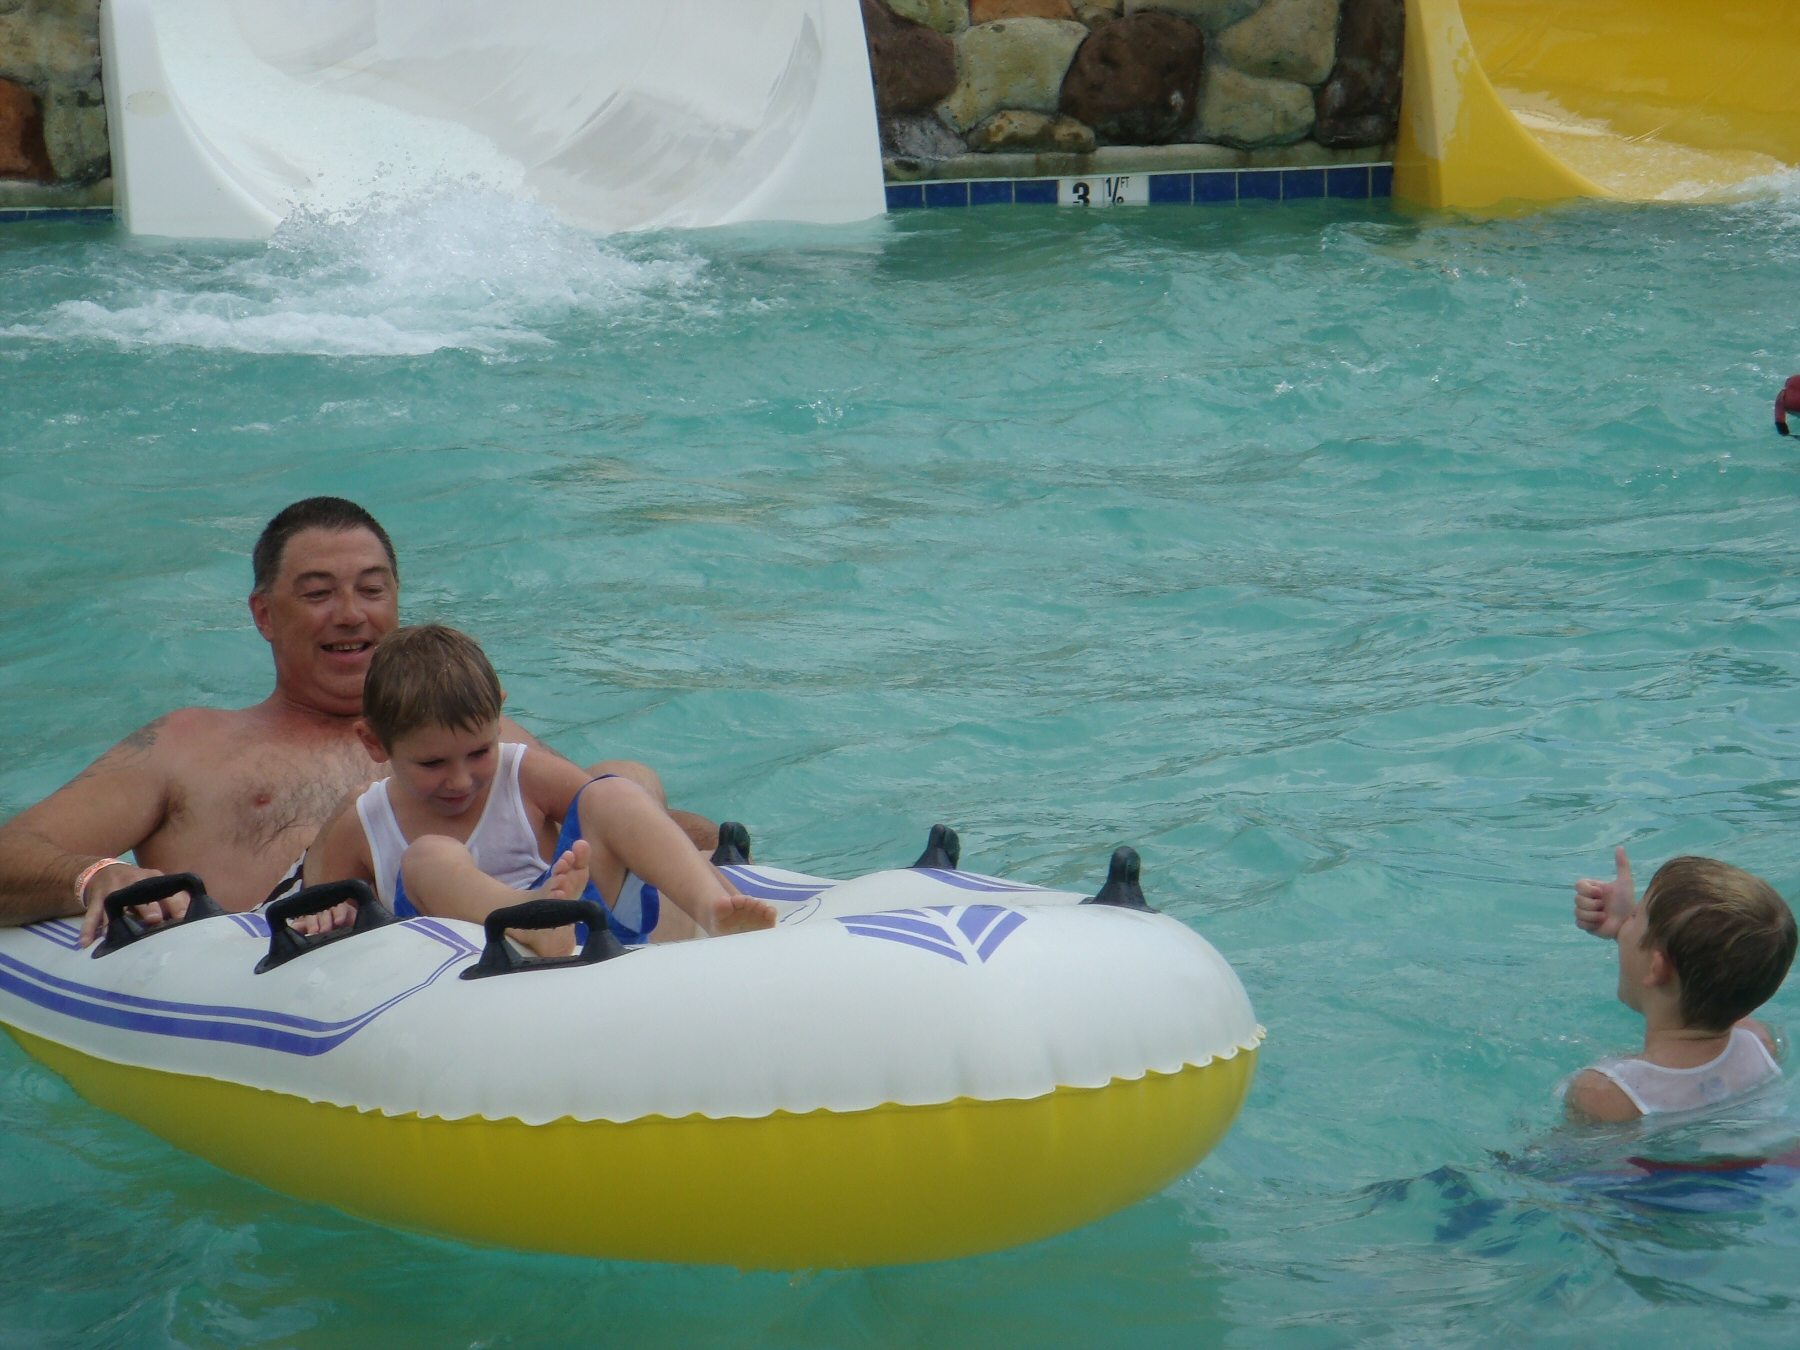 man and kid floating in pool on raft